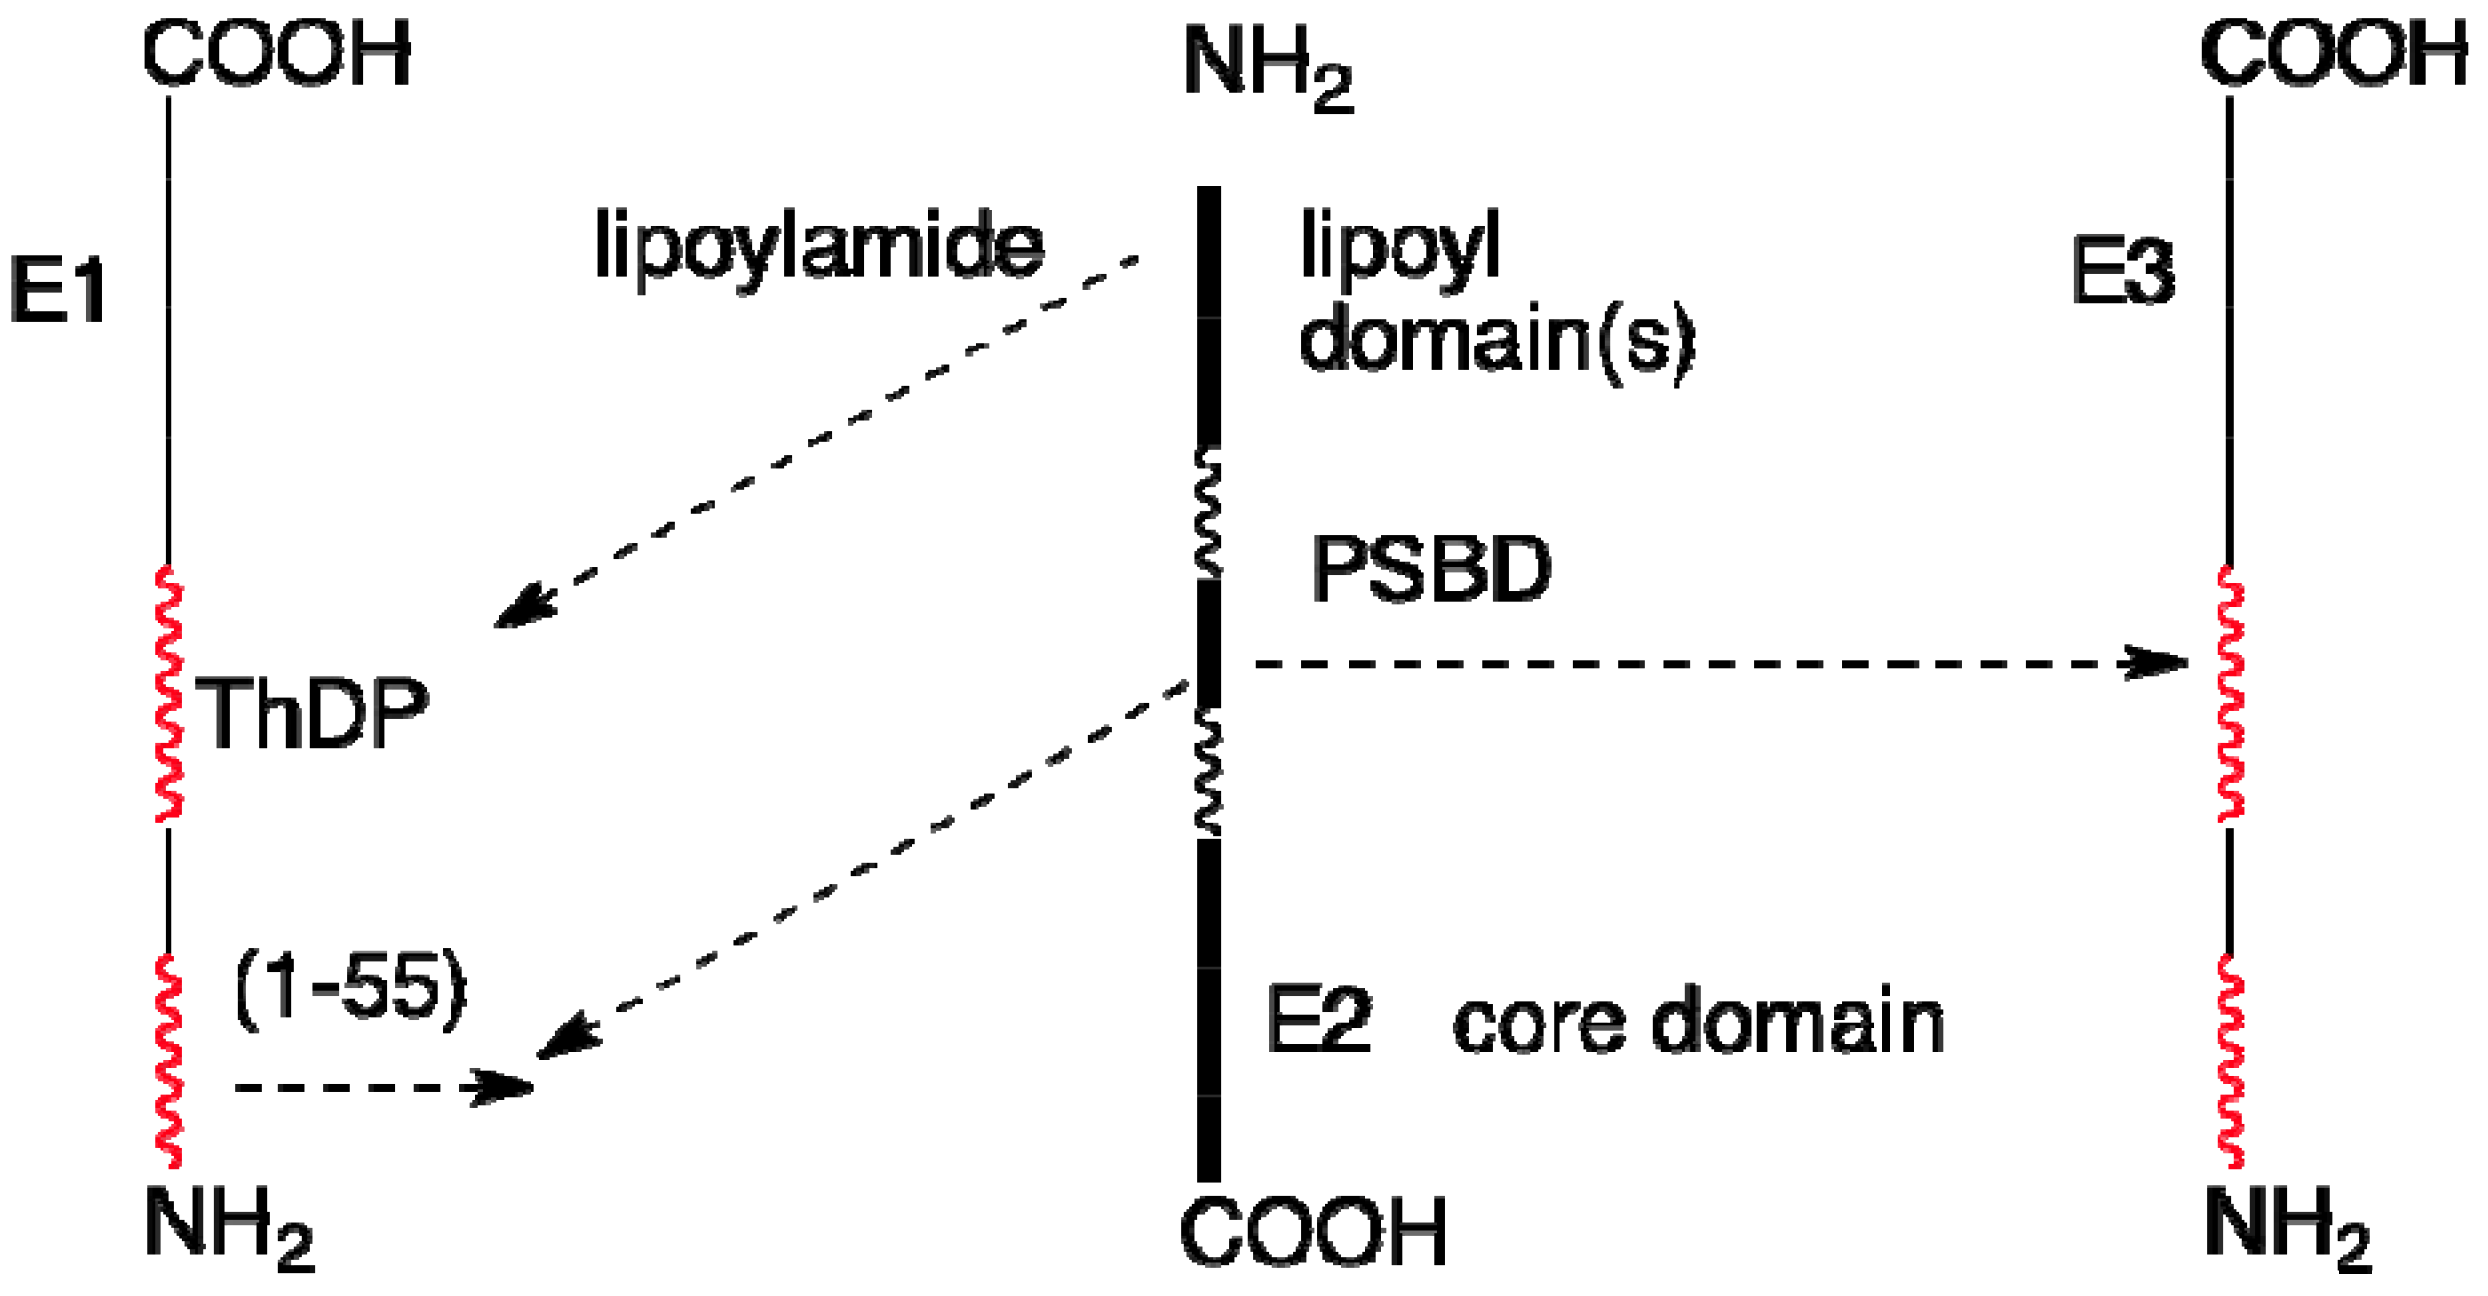 32 Label This Diagram Of The Reaction Catalyzed By The E2